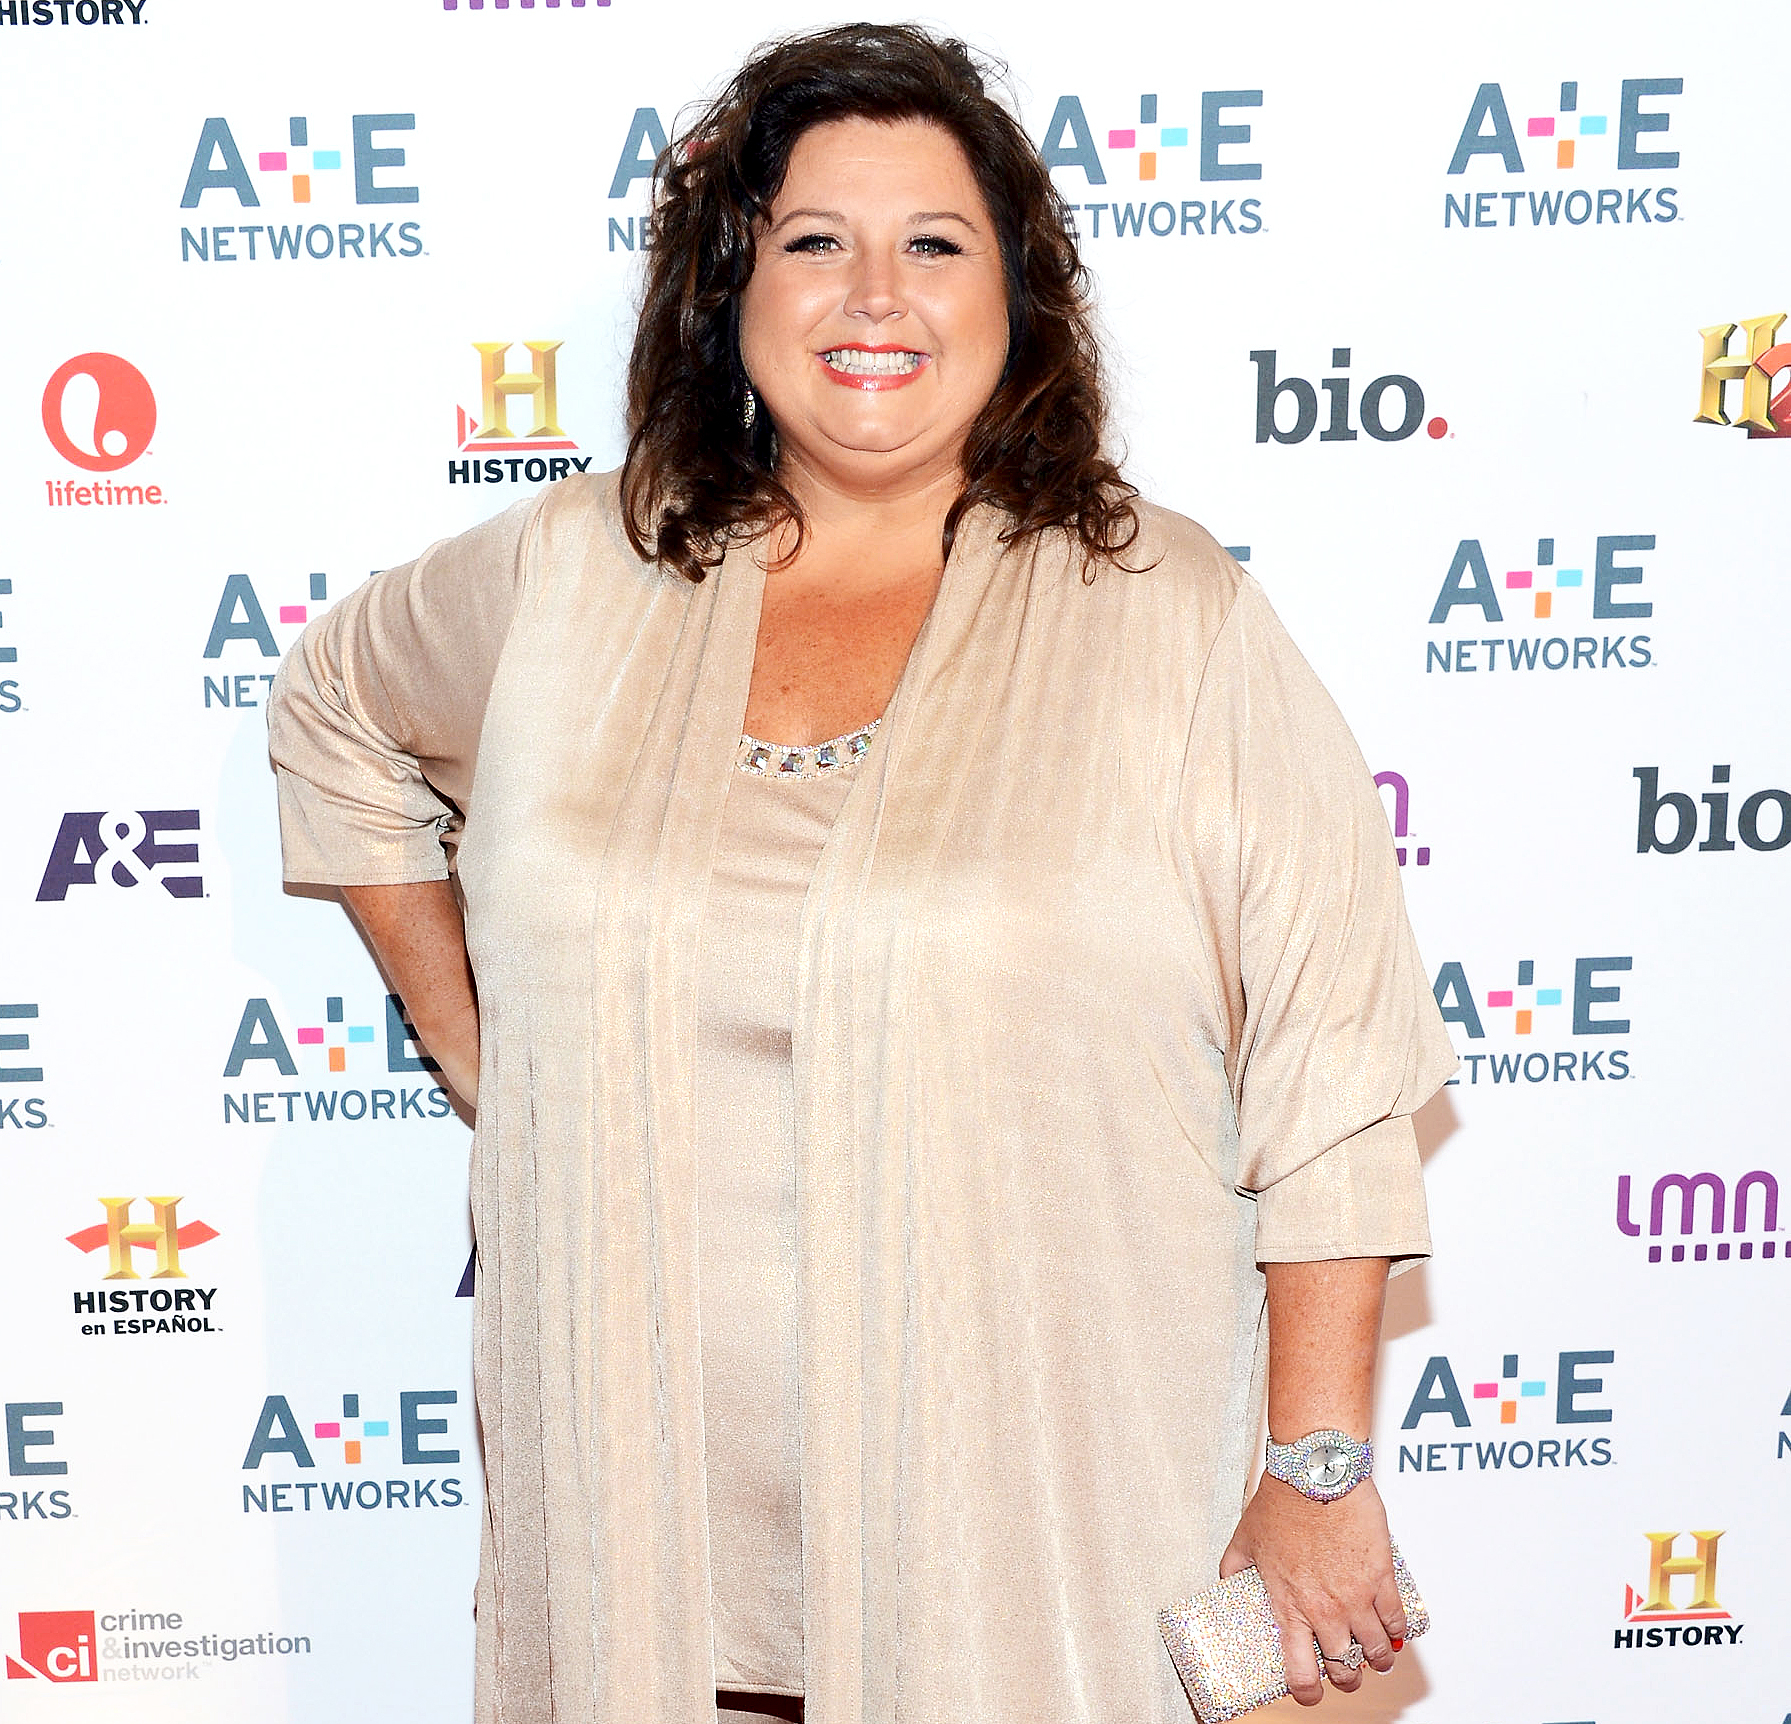 Abby Lee Miller attends A&E Networks 2012 Upfront at Lincoln Center on May 9, 2012 in New York City.